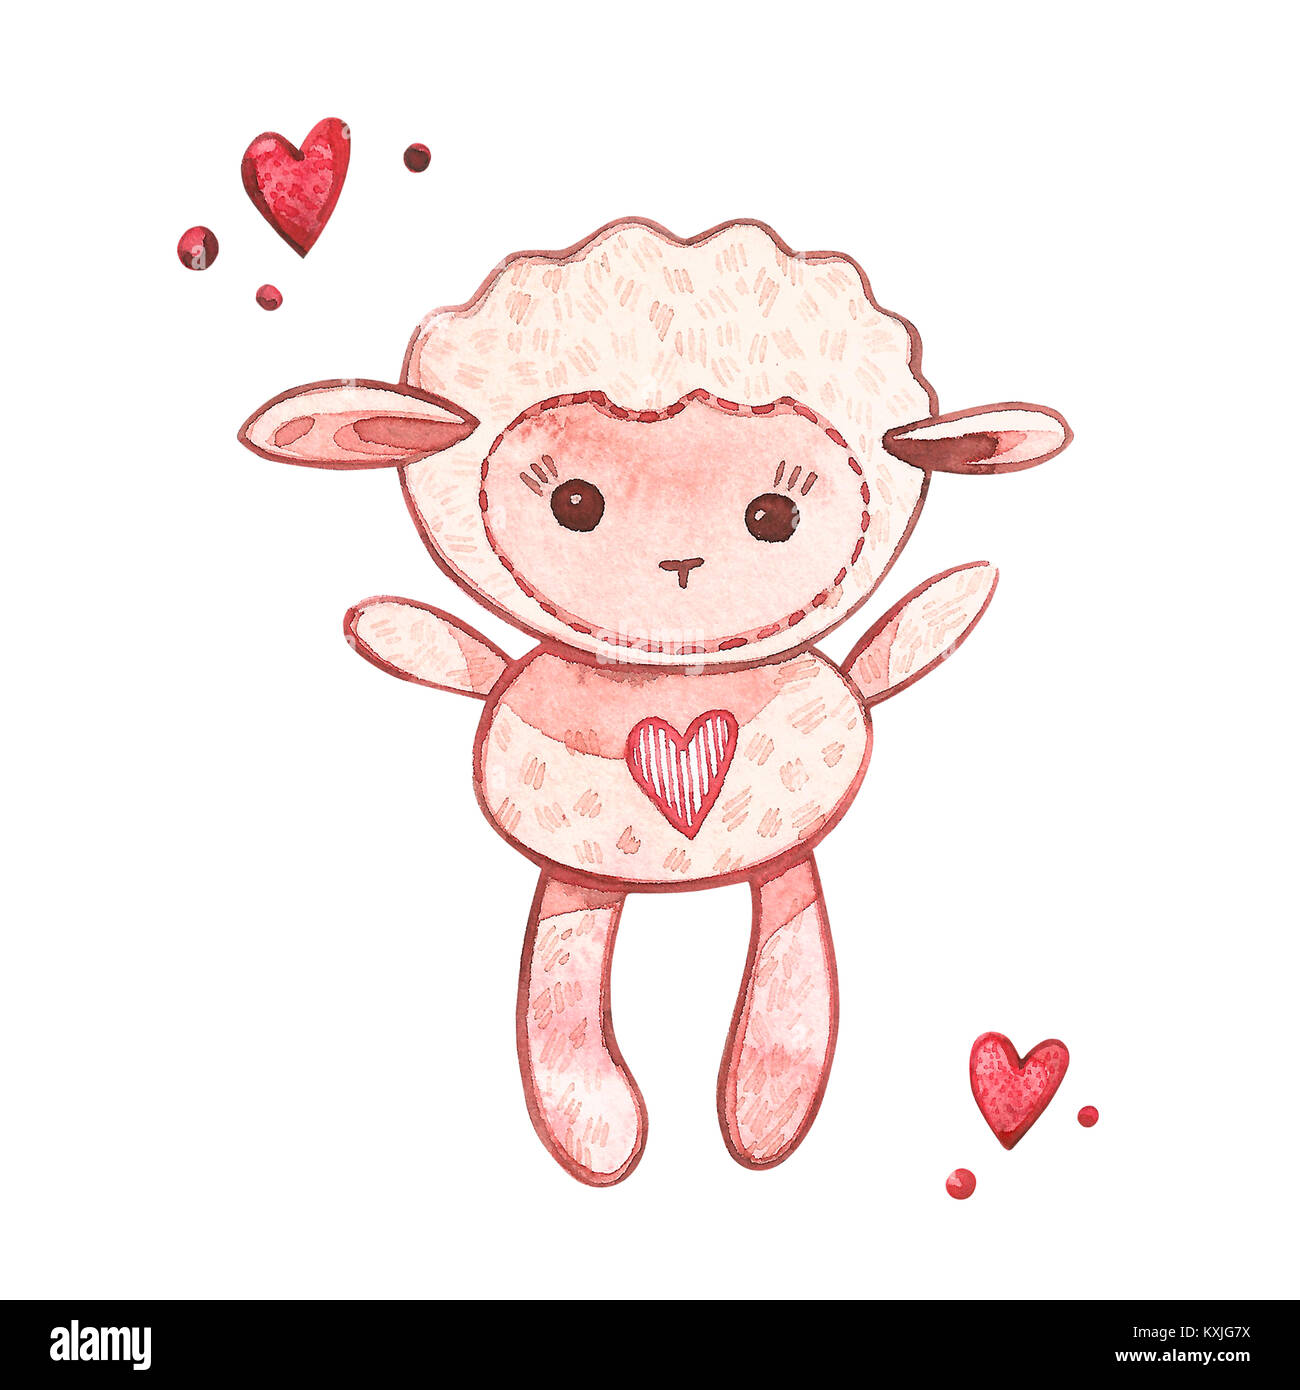 Baby Lamb Cut Out Stock Images & Pictures - Alamy